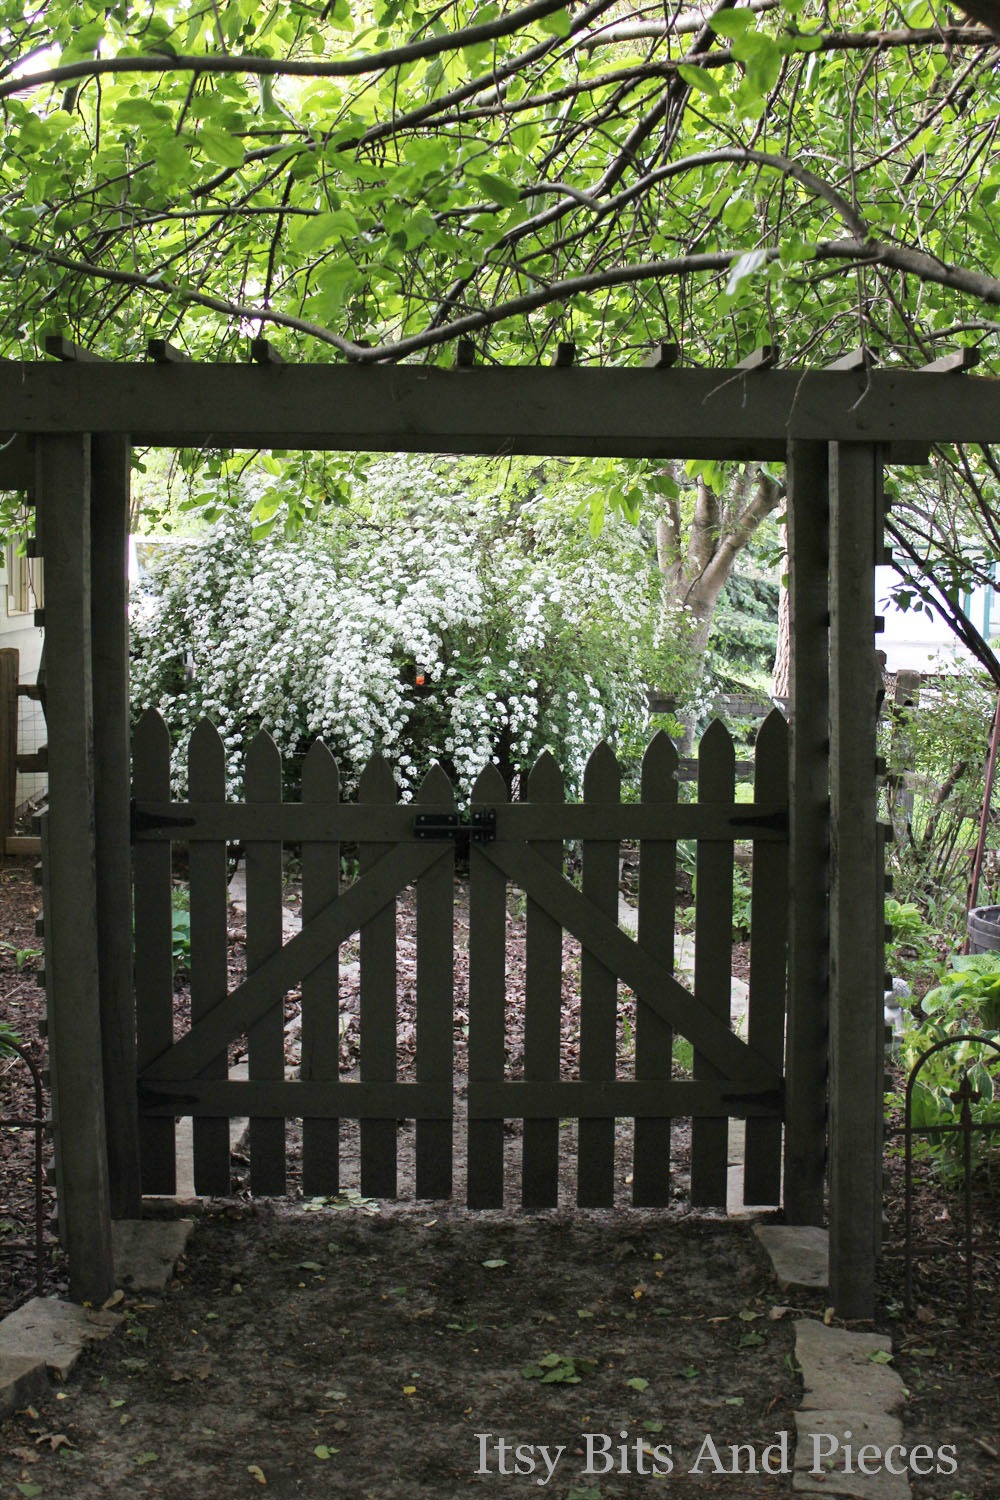 Garden Glimpses Itsy Bits And Pieces